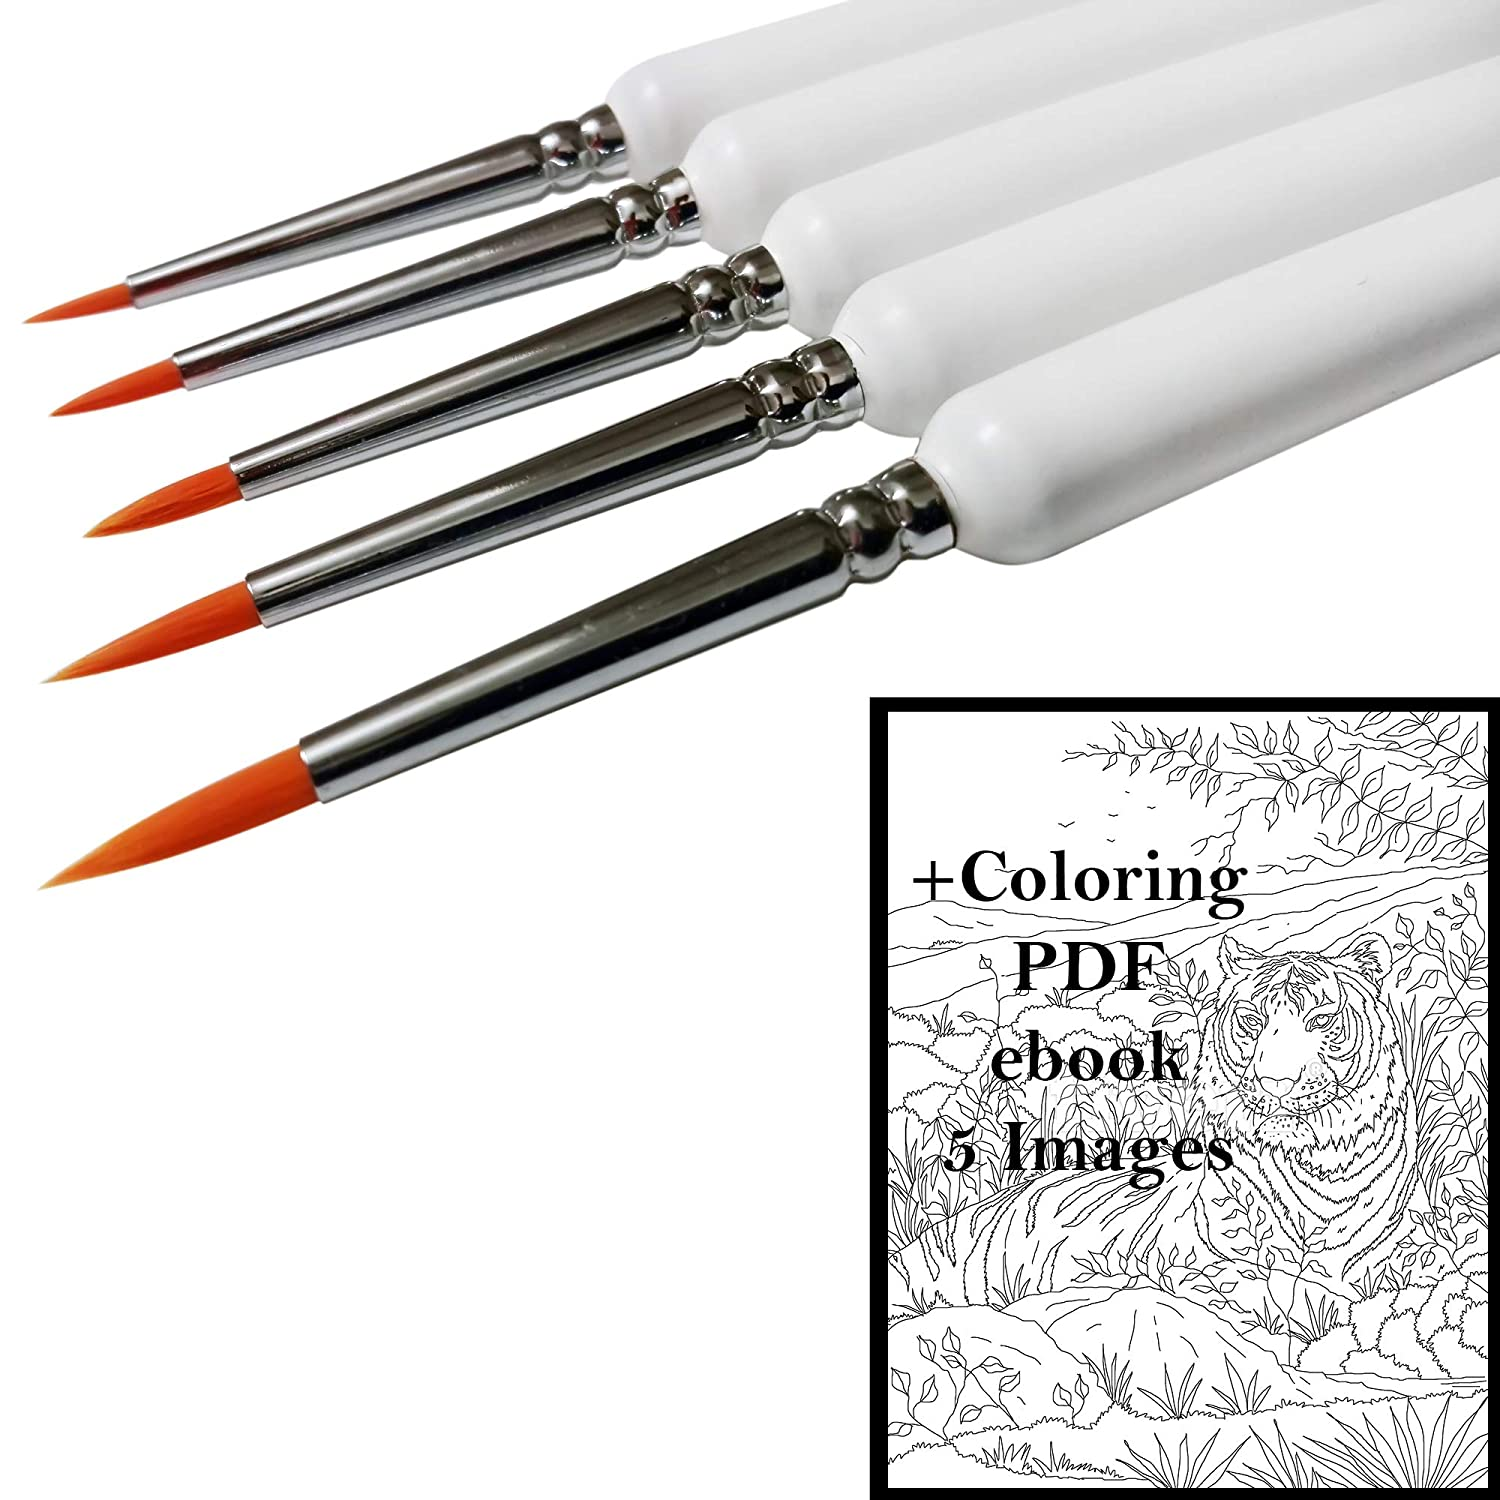 Fine Tip Detail Paint Brush Set, Best for Detailing with Acrylic, Watercolor, Oil, Miniature and Rock Painting, Nail Art, Nylon Brushes, Ergonomic Wooden Handles for Ultimate Precision + Coloring PDF Shine 4336964713